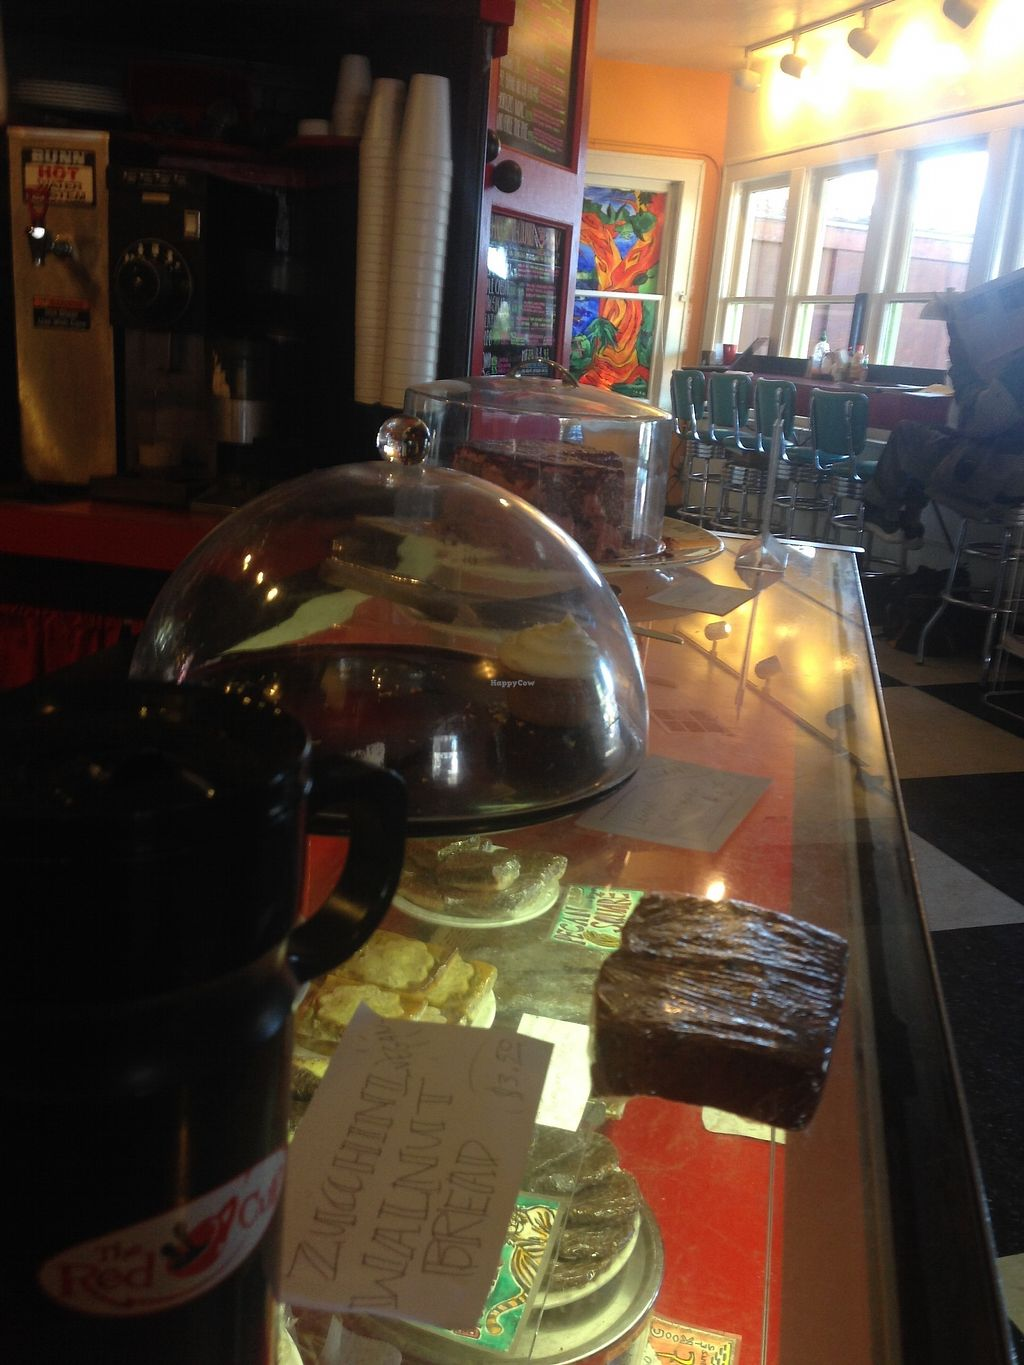 """Photo of Red Cup Coffee House  by <a href=""""/members/profile/MollyJD17"""">MollyJD17</a> <br/>Front counter with baked goods of the day on display <br/> December 29, 2017  - <a href='/contact/abuse/image/11038/340293'>Report</a>"""